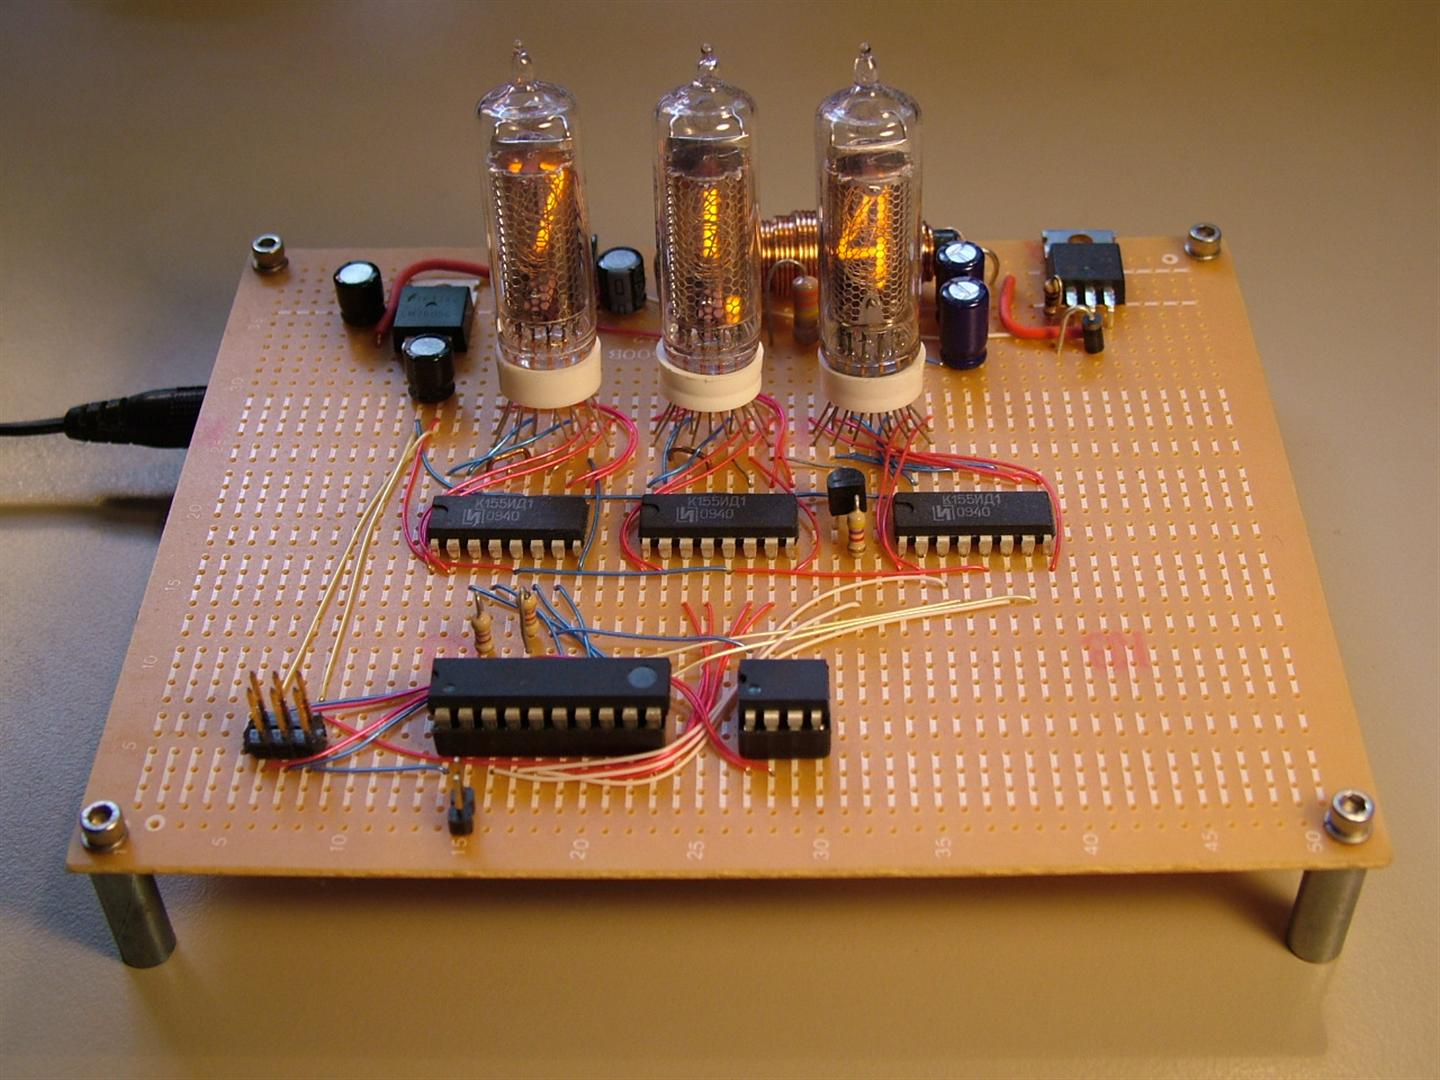 The Life Of Kenneth Avr Nixie Tube Thermometer Circuit Schematic Using Operational Amplifiers